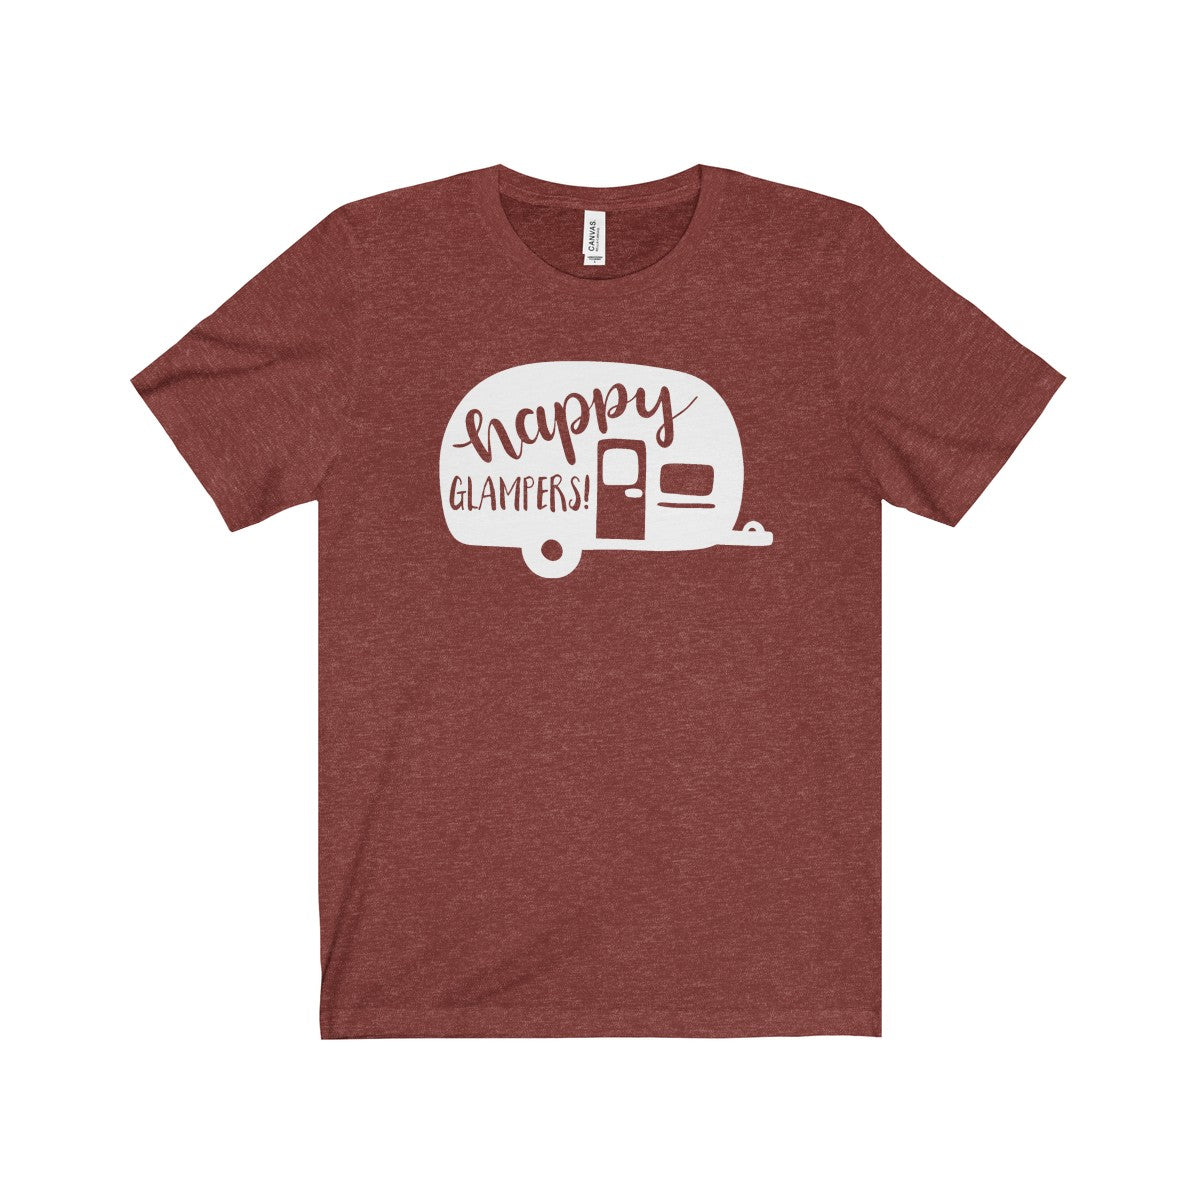 Happy Glampers Unisex Jersey Short Sleeve Tee